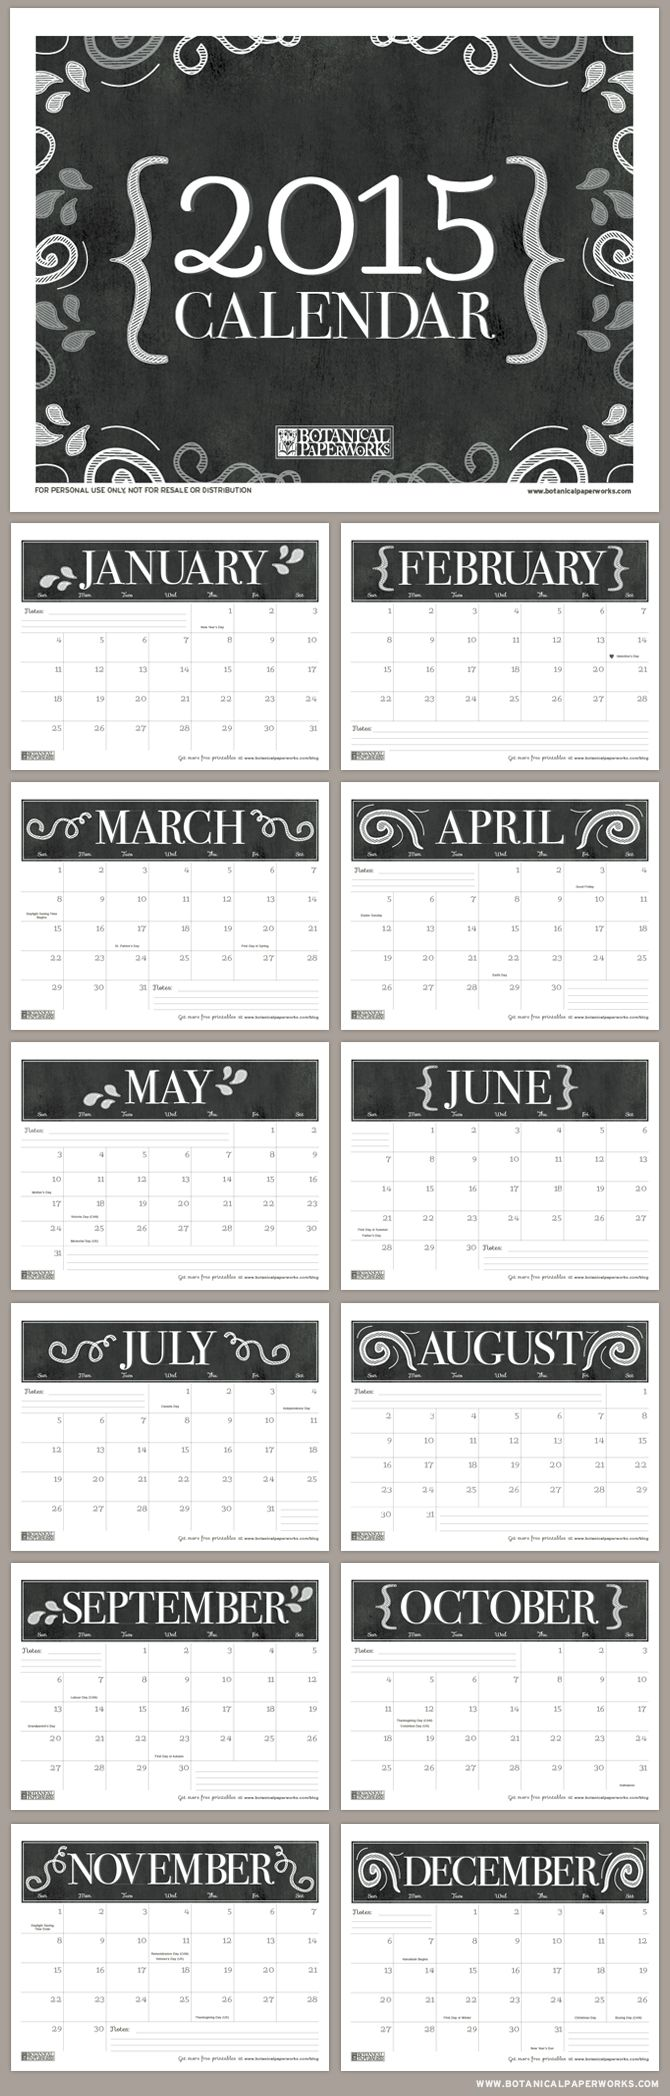 Get organized with this handy chalkboard style FREE printable calendar for 2015. Download more #freeprintables for 2015 here: http://www.pinterest.com/hre/2015-free-printables/